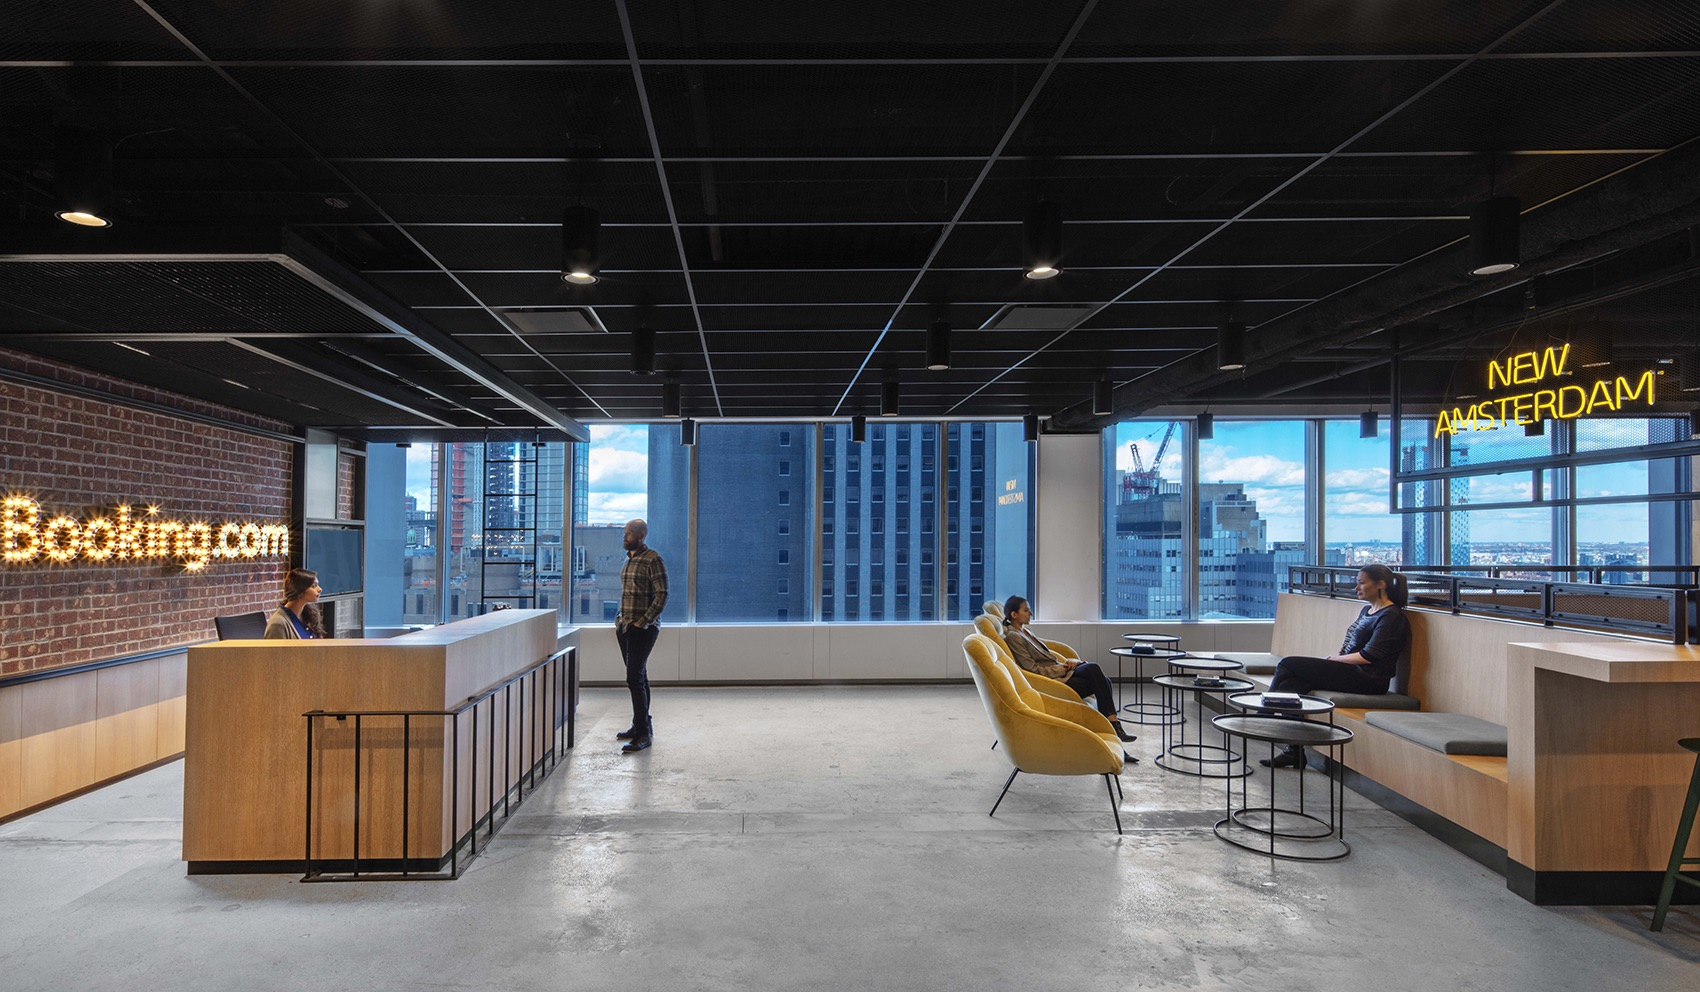 A Look Inside Booking.com's Eclectic NYC Office